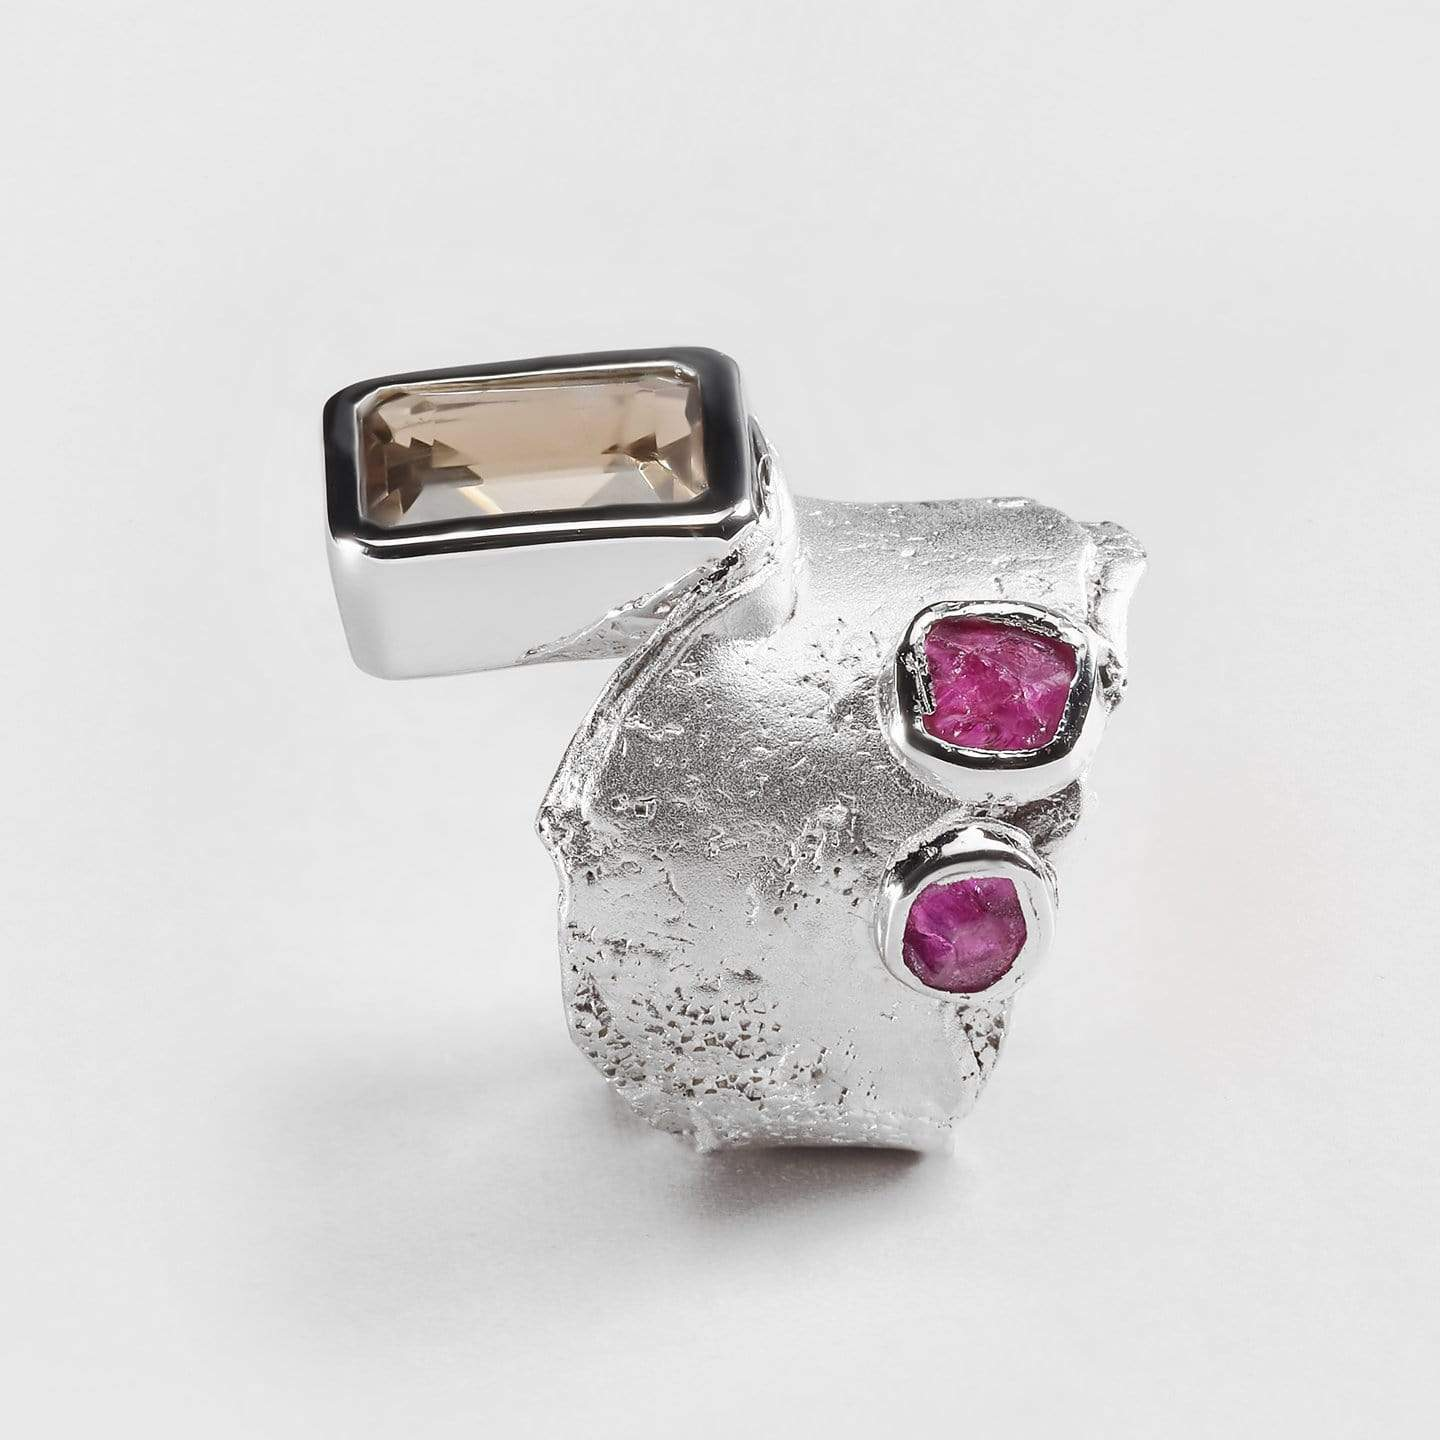 Alai Ruby and Quartz Ring